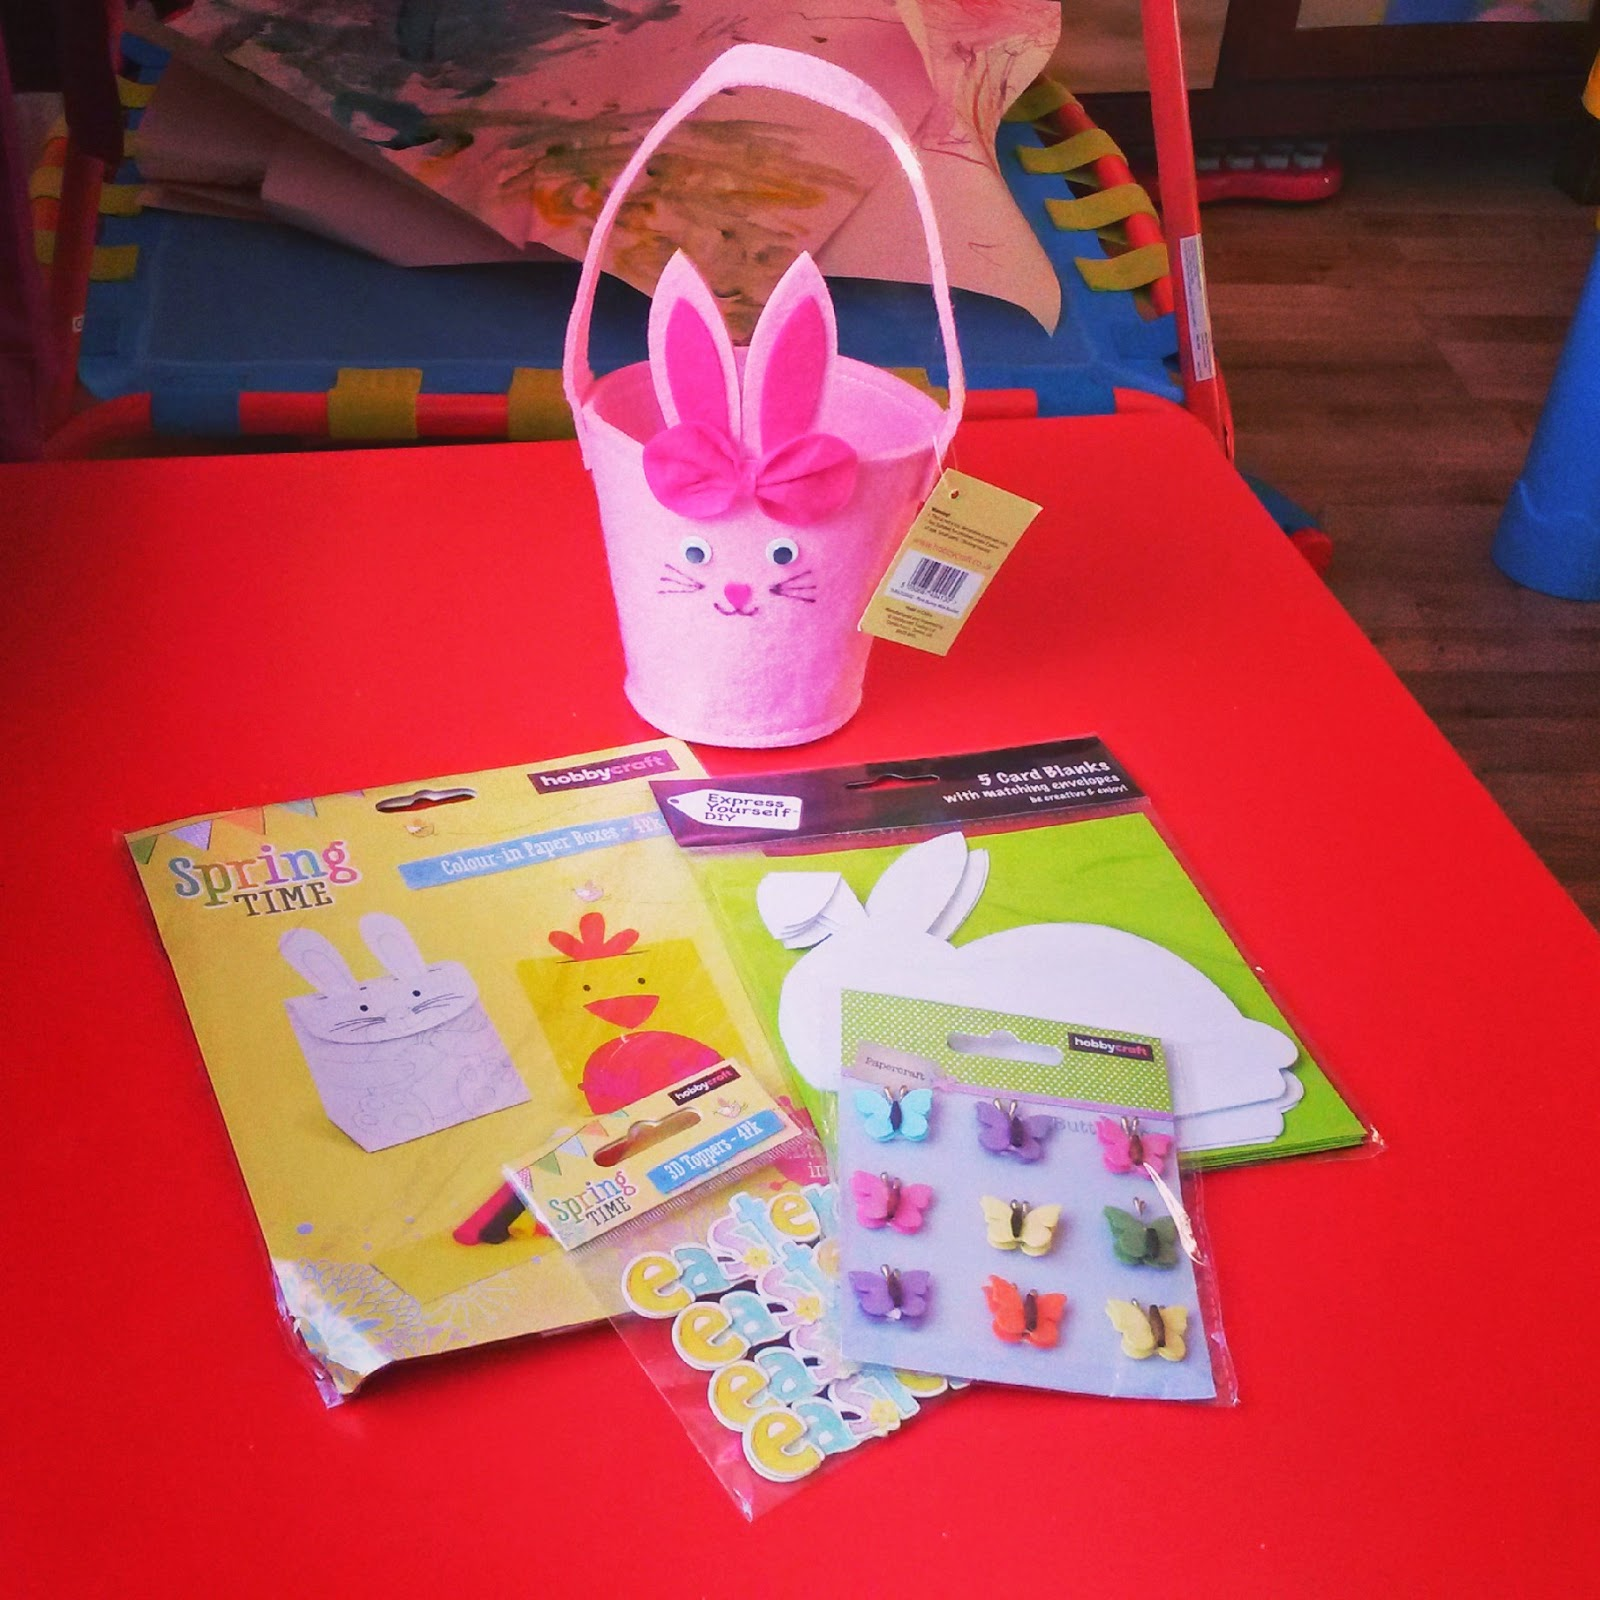 Review: Easter at Hobbycraft